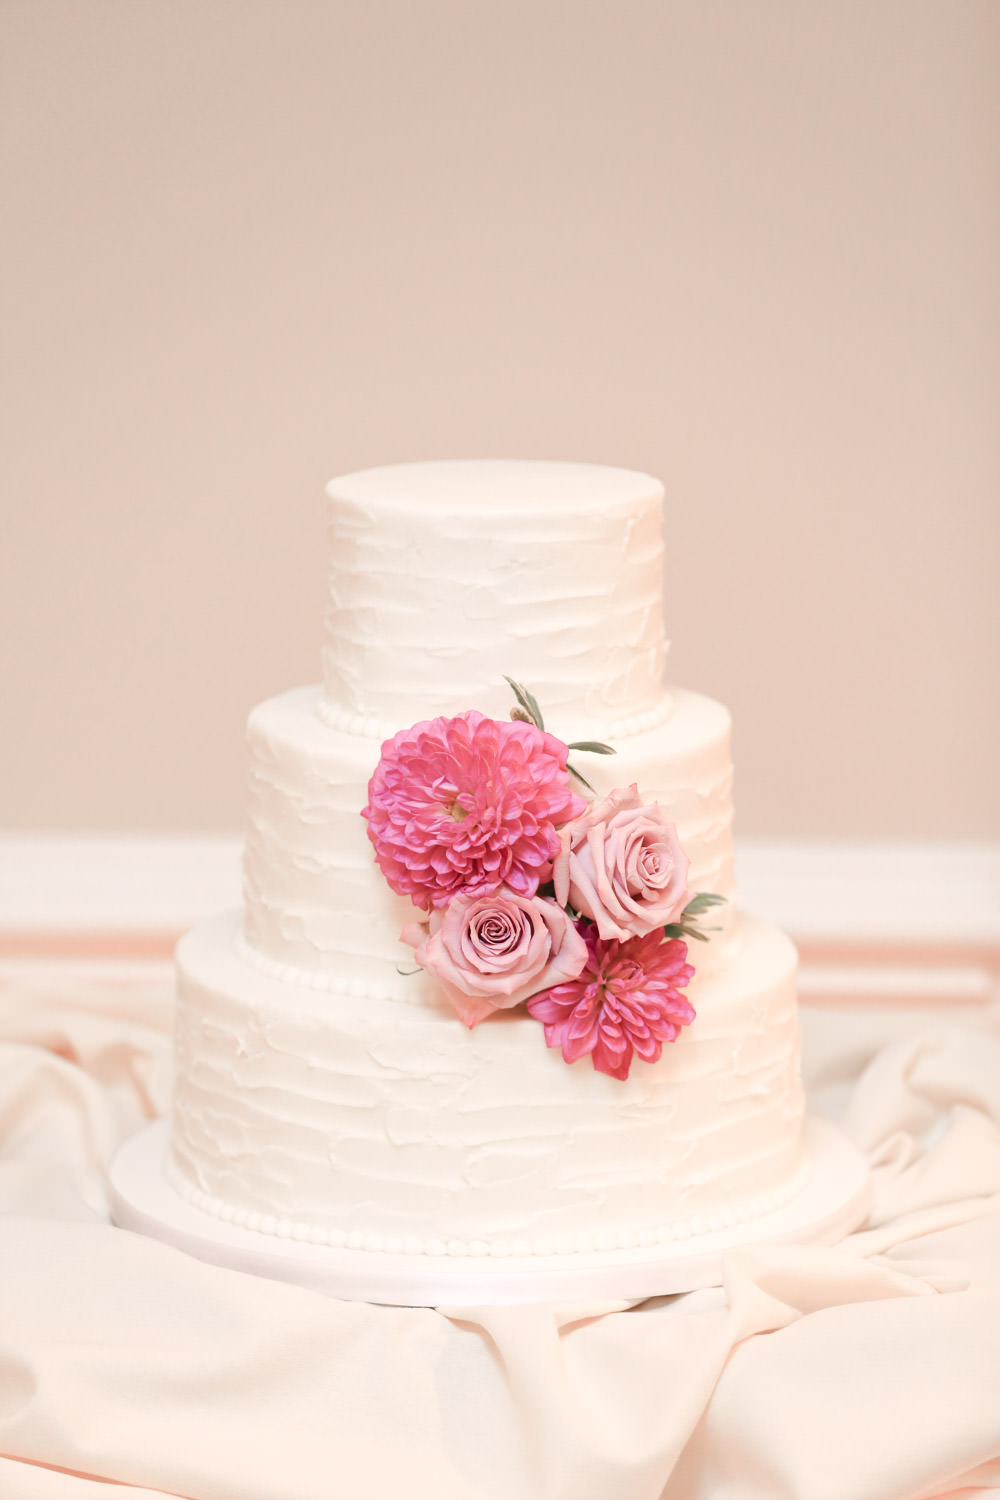 one belle bakery wedding cake